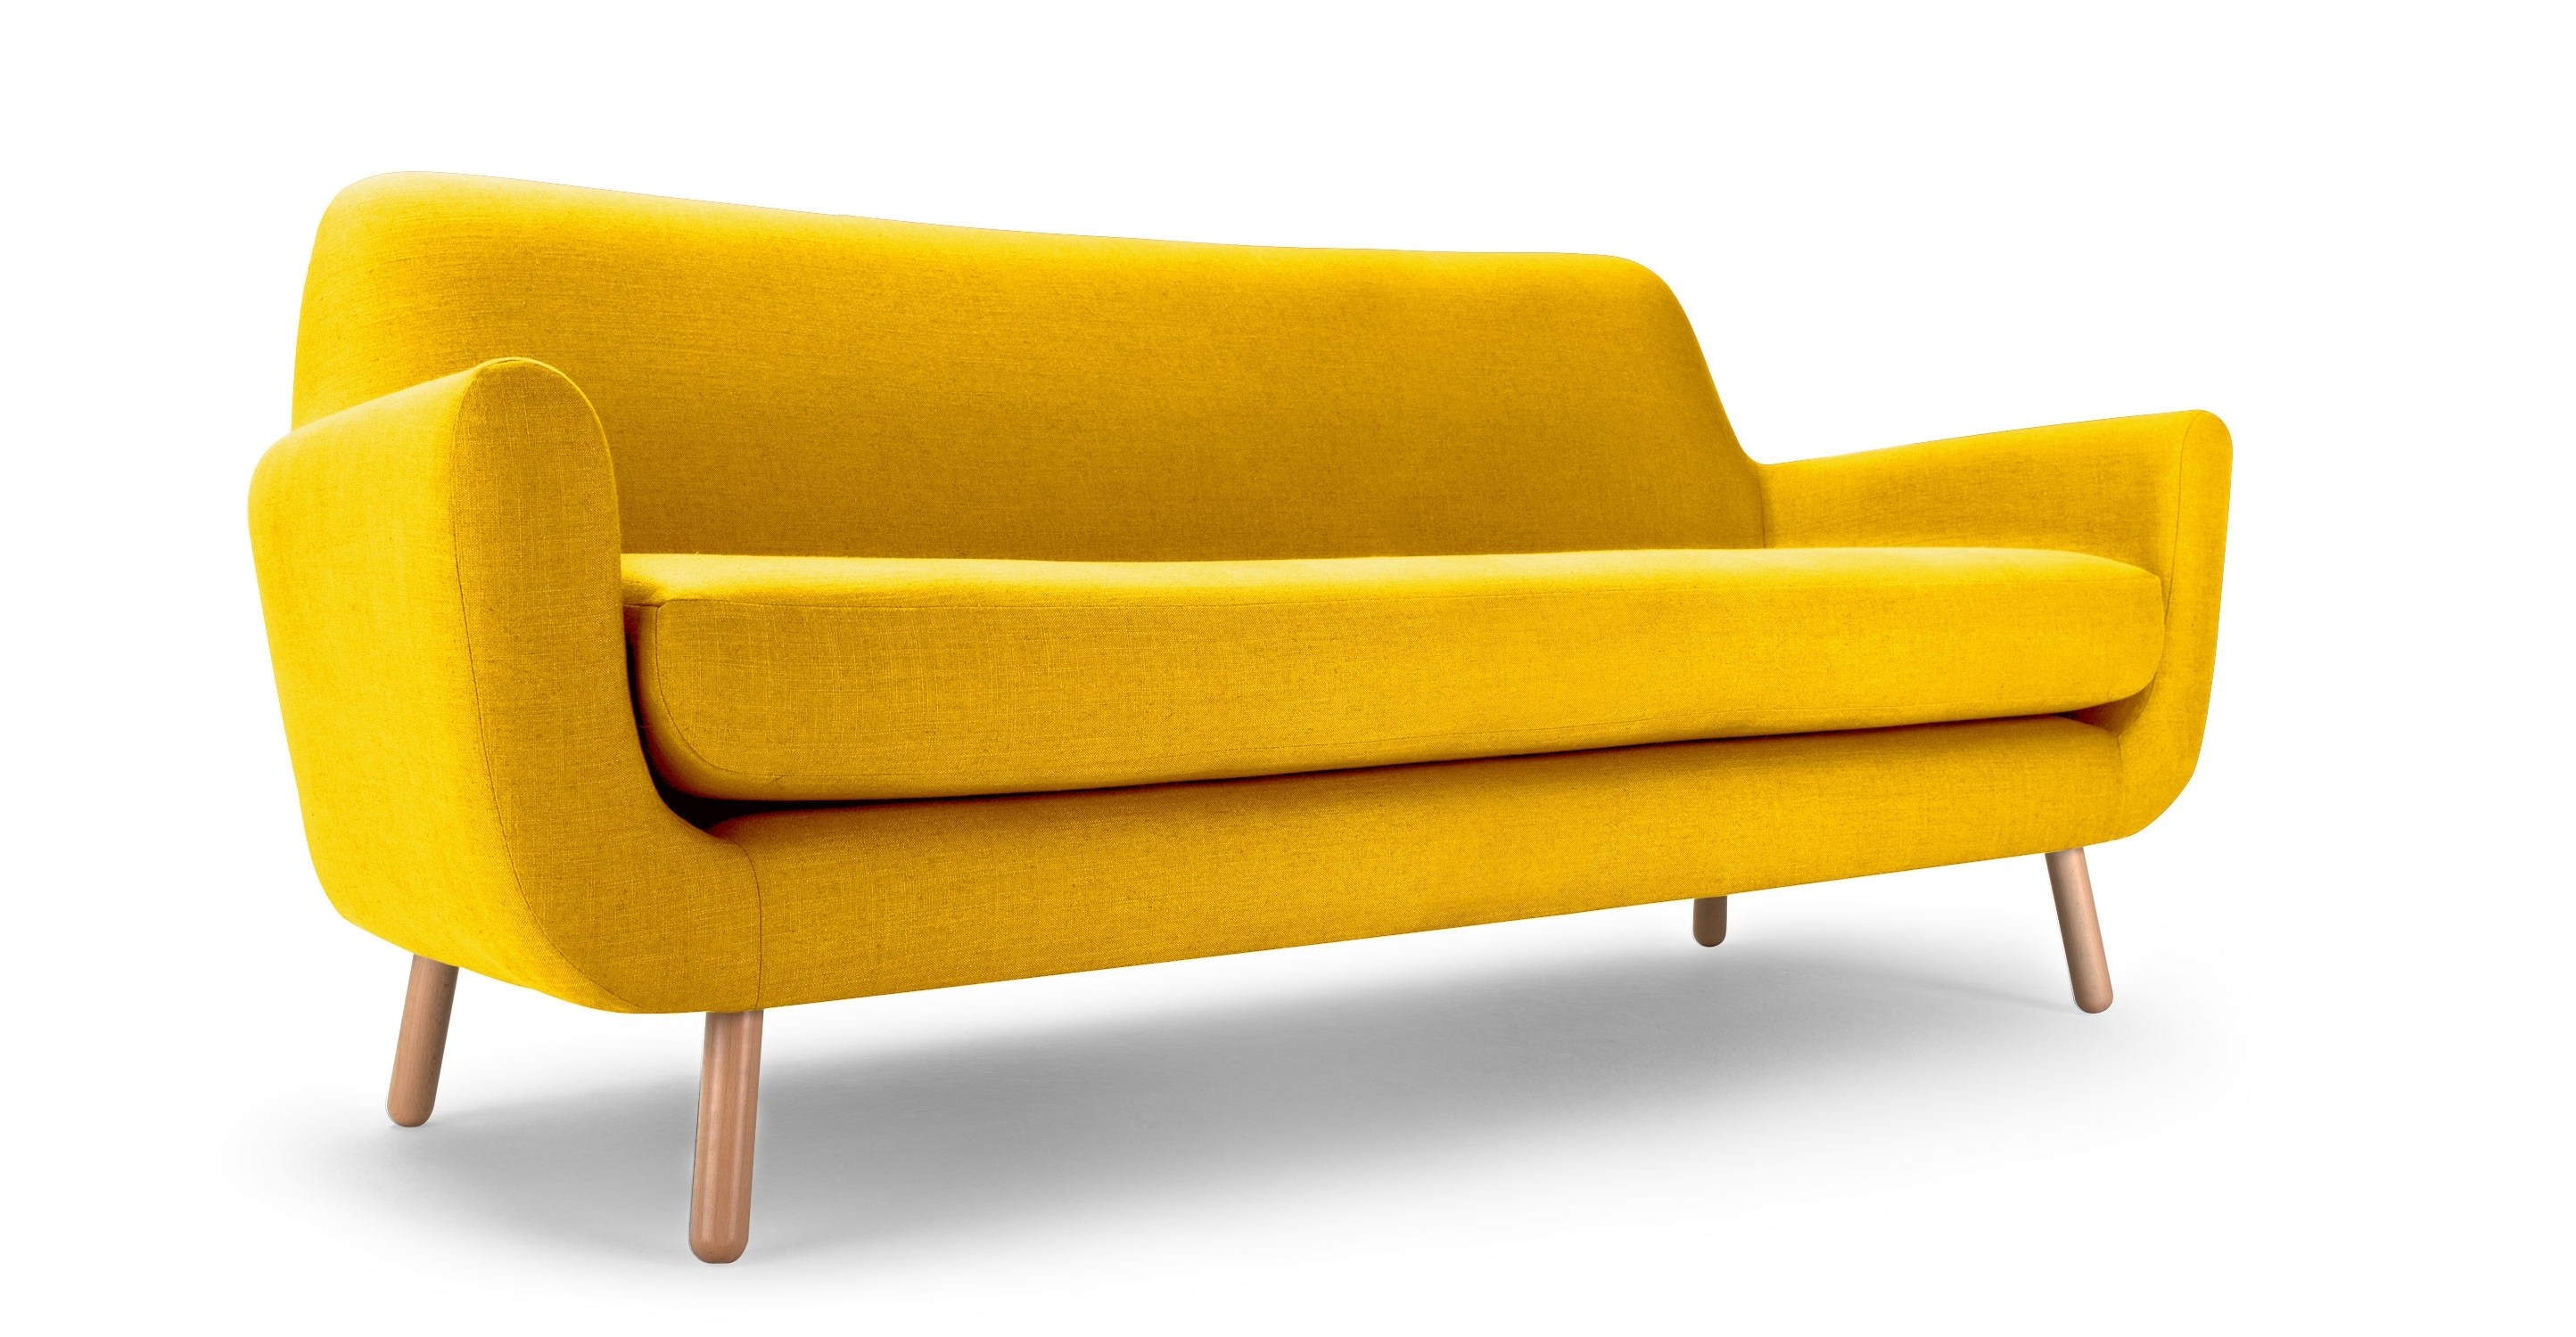 Famous The Jonah 3 Seater Sofa In Dandelion Yellow Linen Mix Fabric Will With Yellow Sofa Chairs (View 8 of 15)